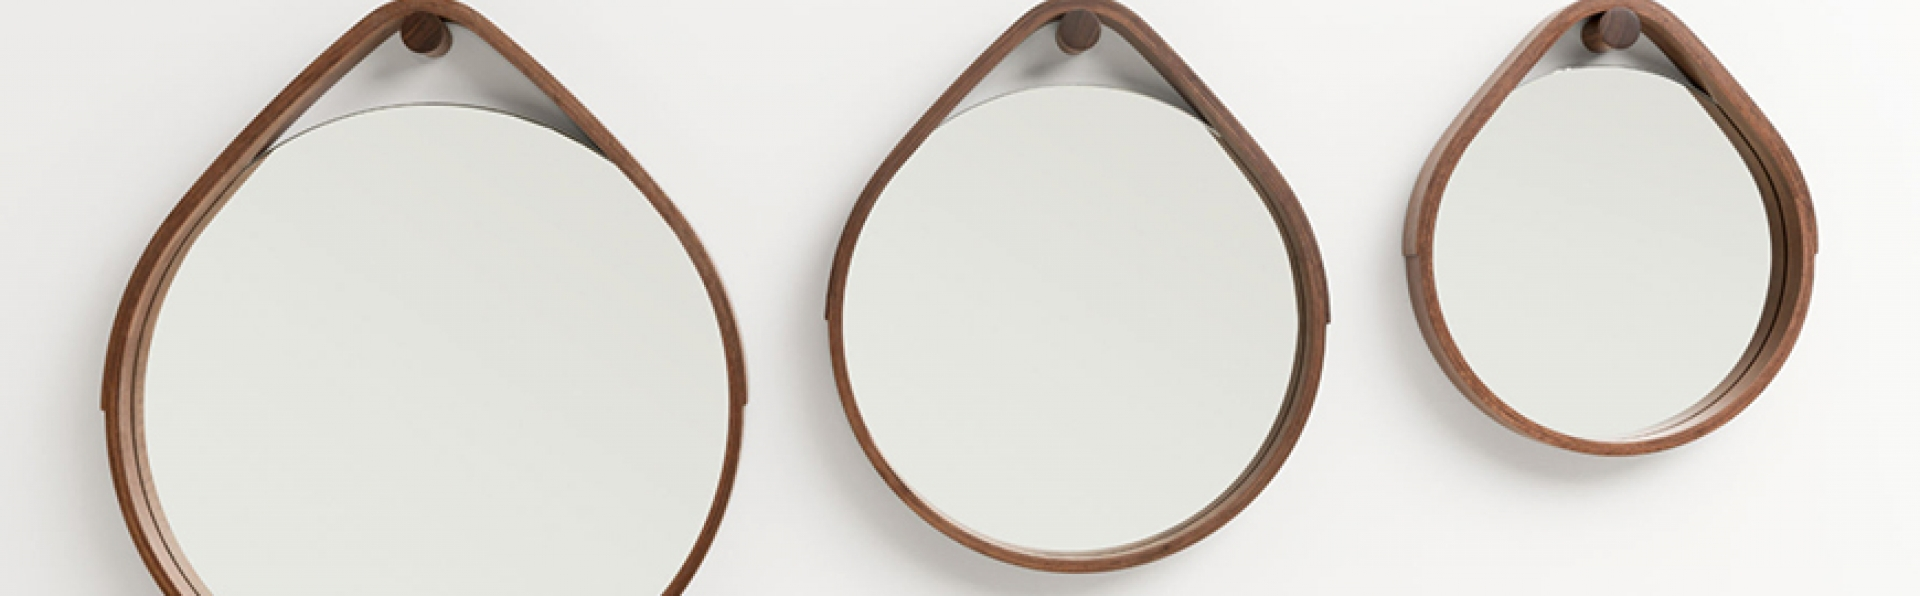 Small Mirror, Large Mirror, Mirrors, Wooden Framed Mirrors